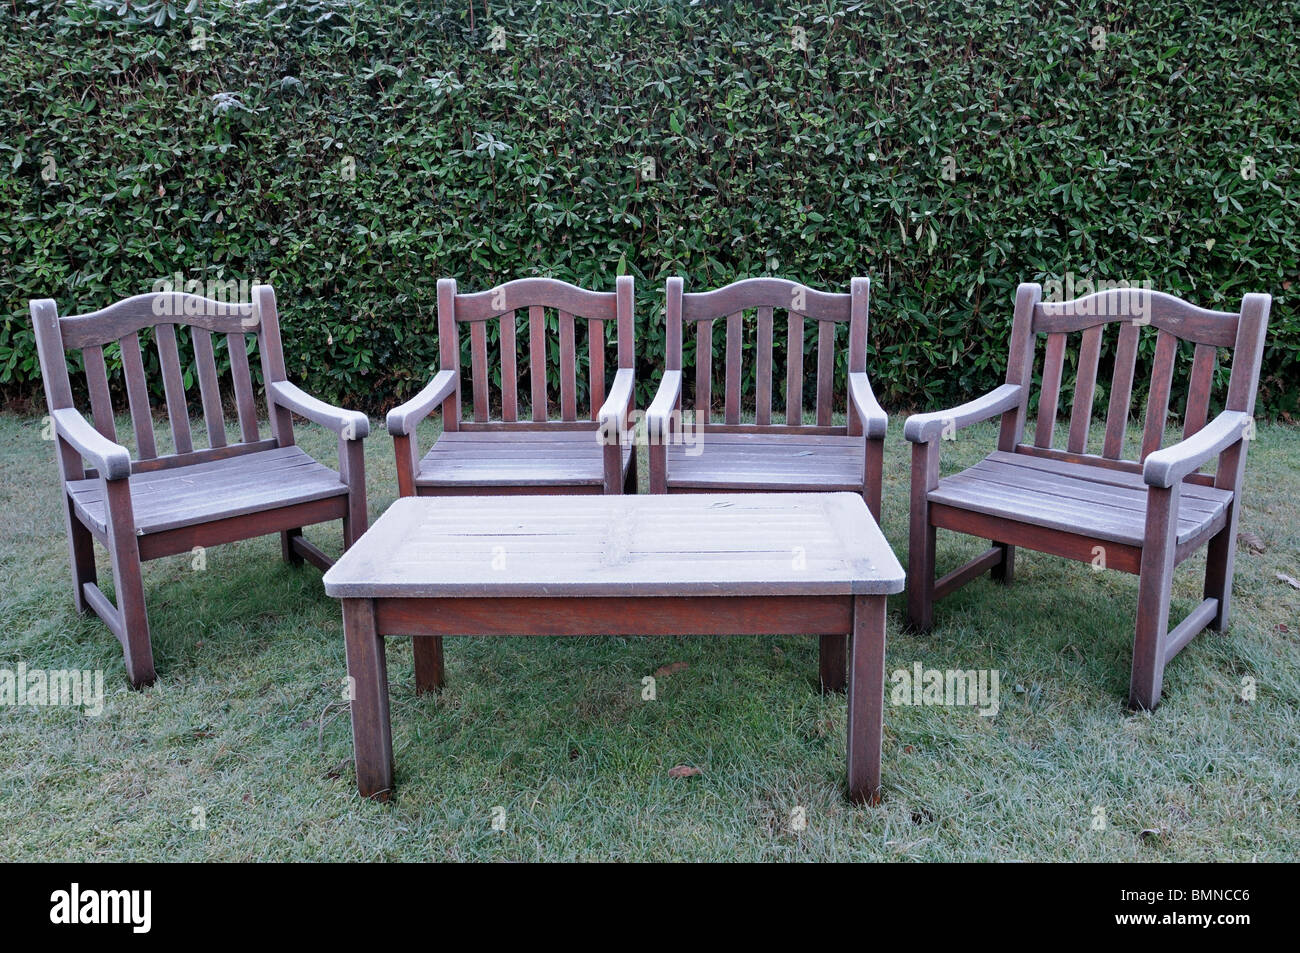 ice frost covered garden furniture wooden seat bench winter cold hedge seat chairs table seating - Garden Furniture Table Bench Seat